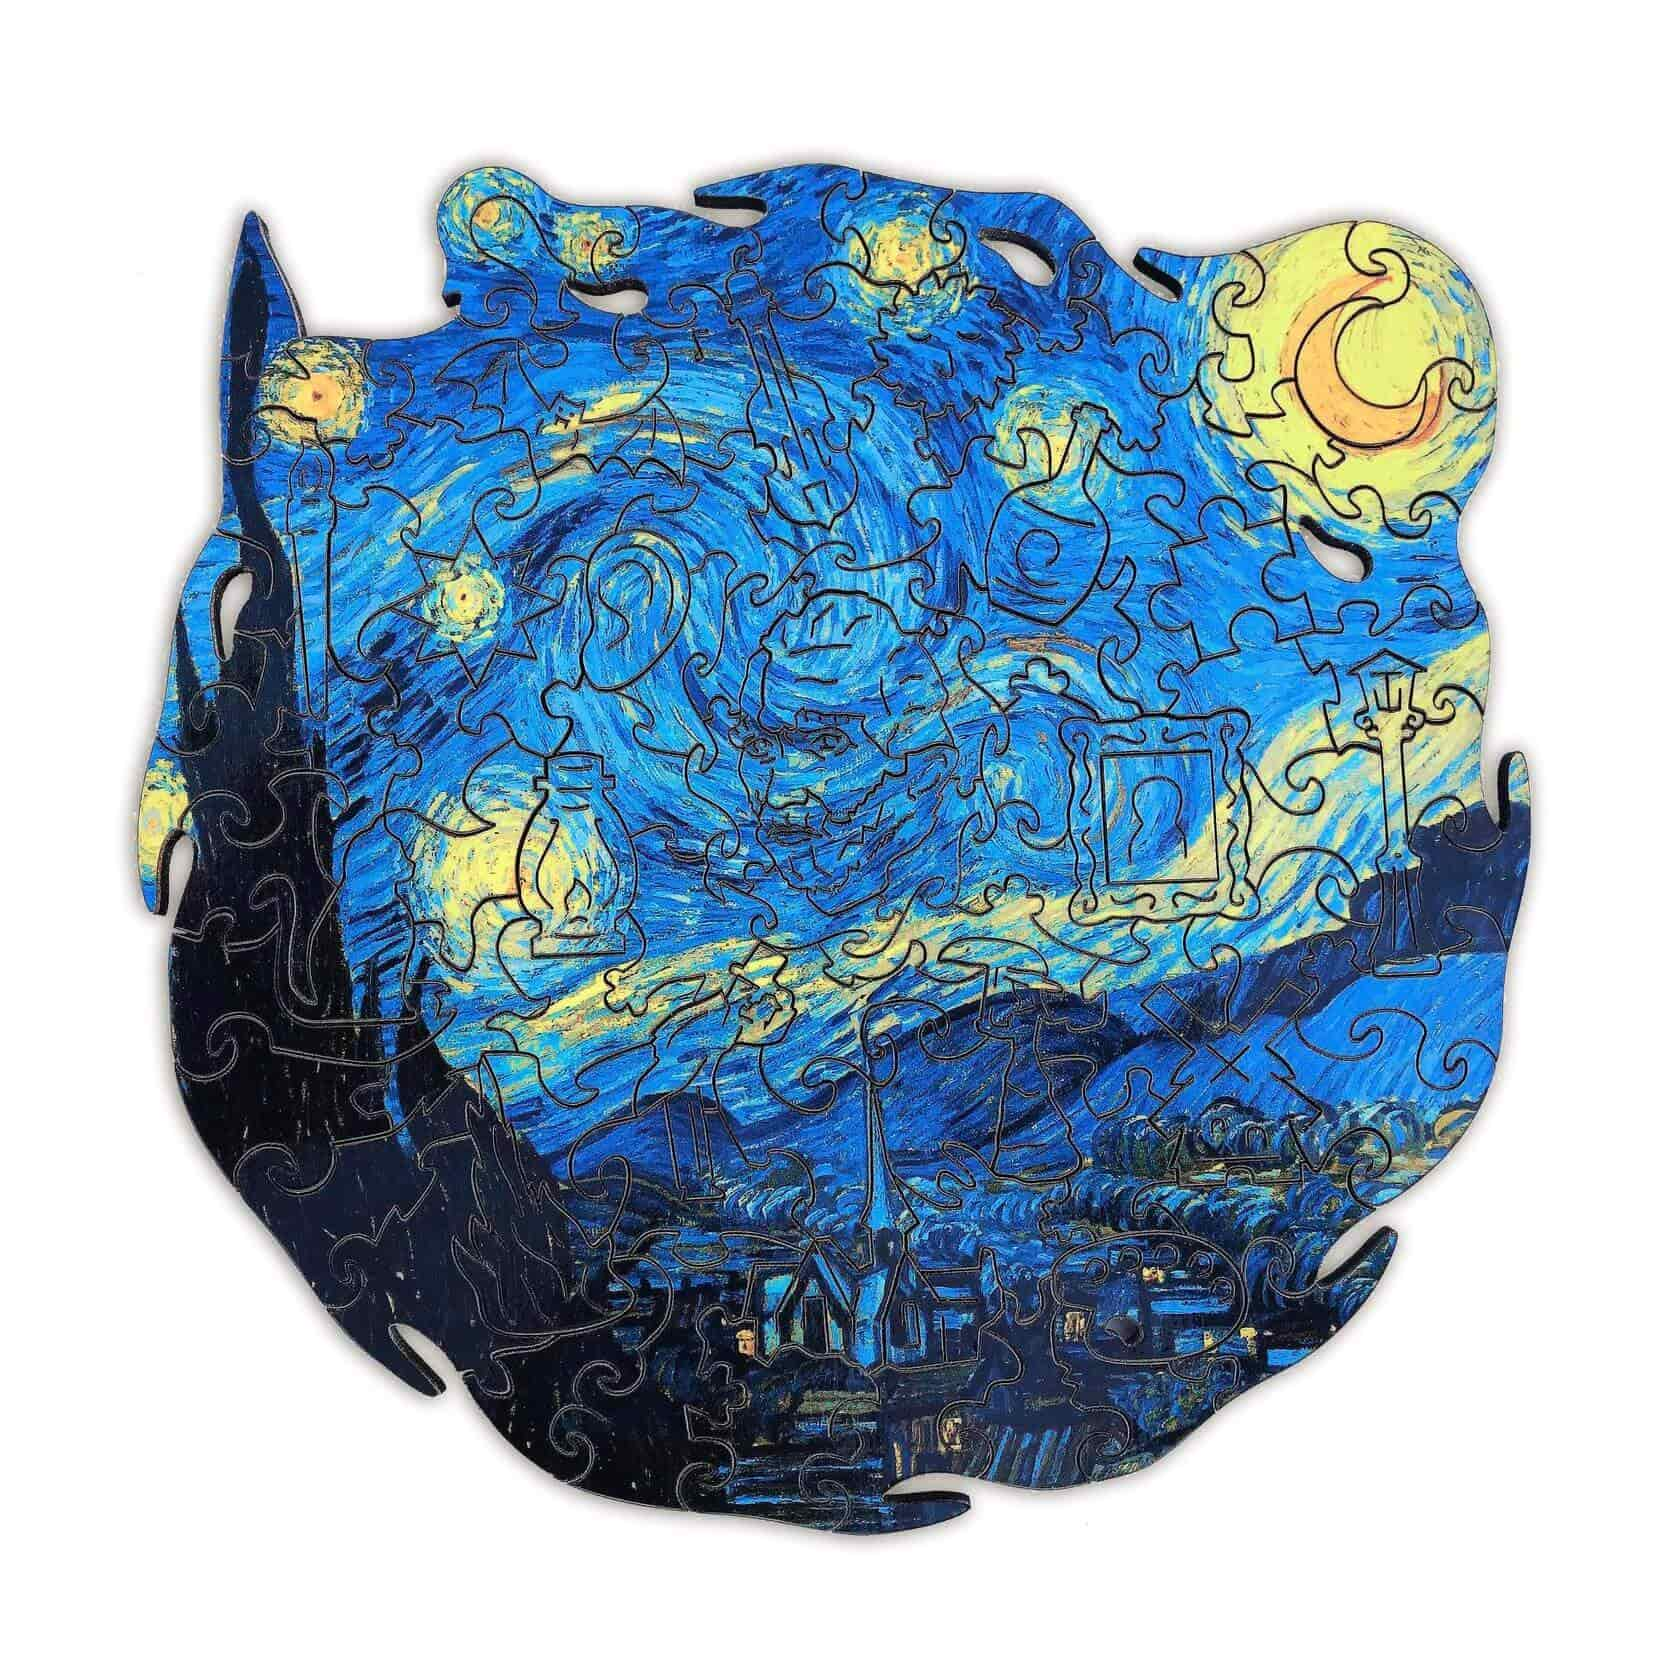 Starry Night Wooden Puzzle SIZE SMALL 101 pieces, 19x19 cm (8 x 8